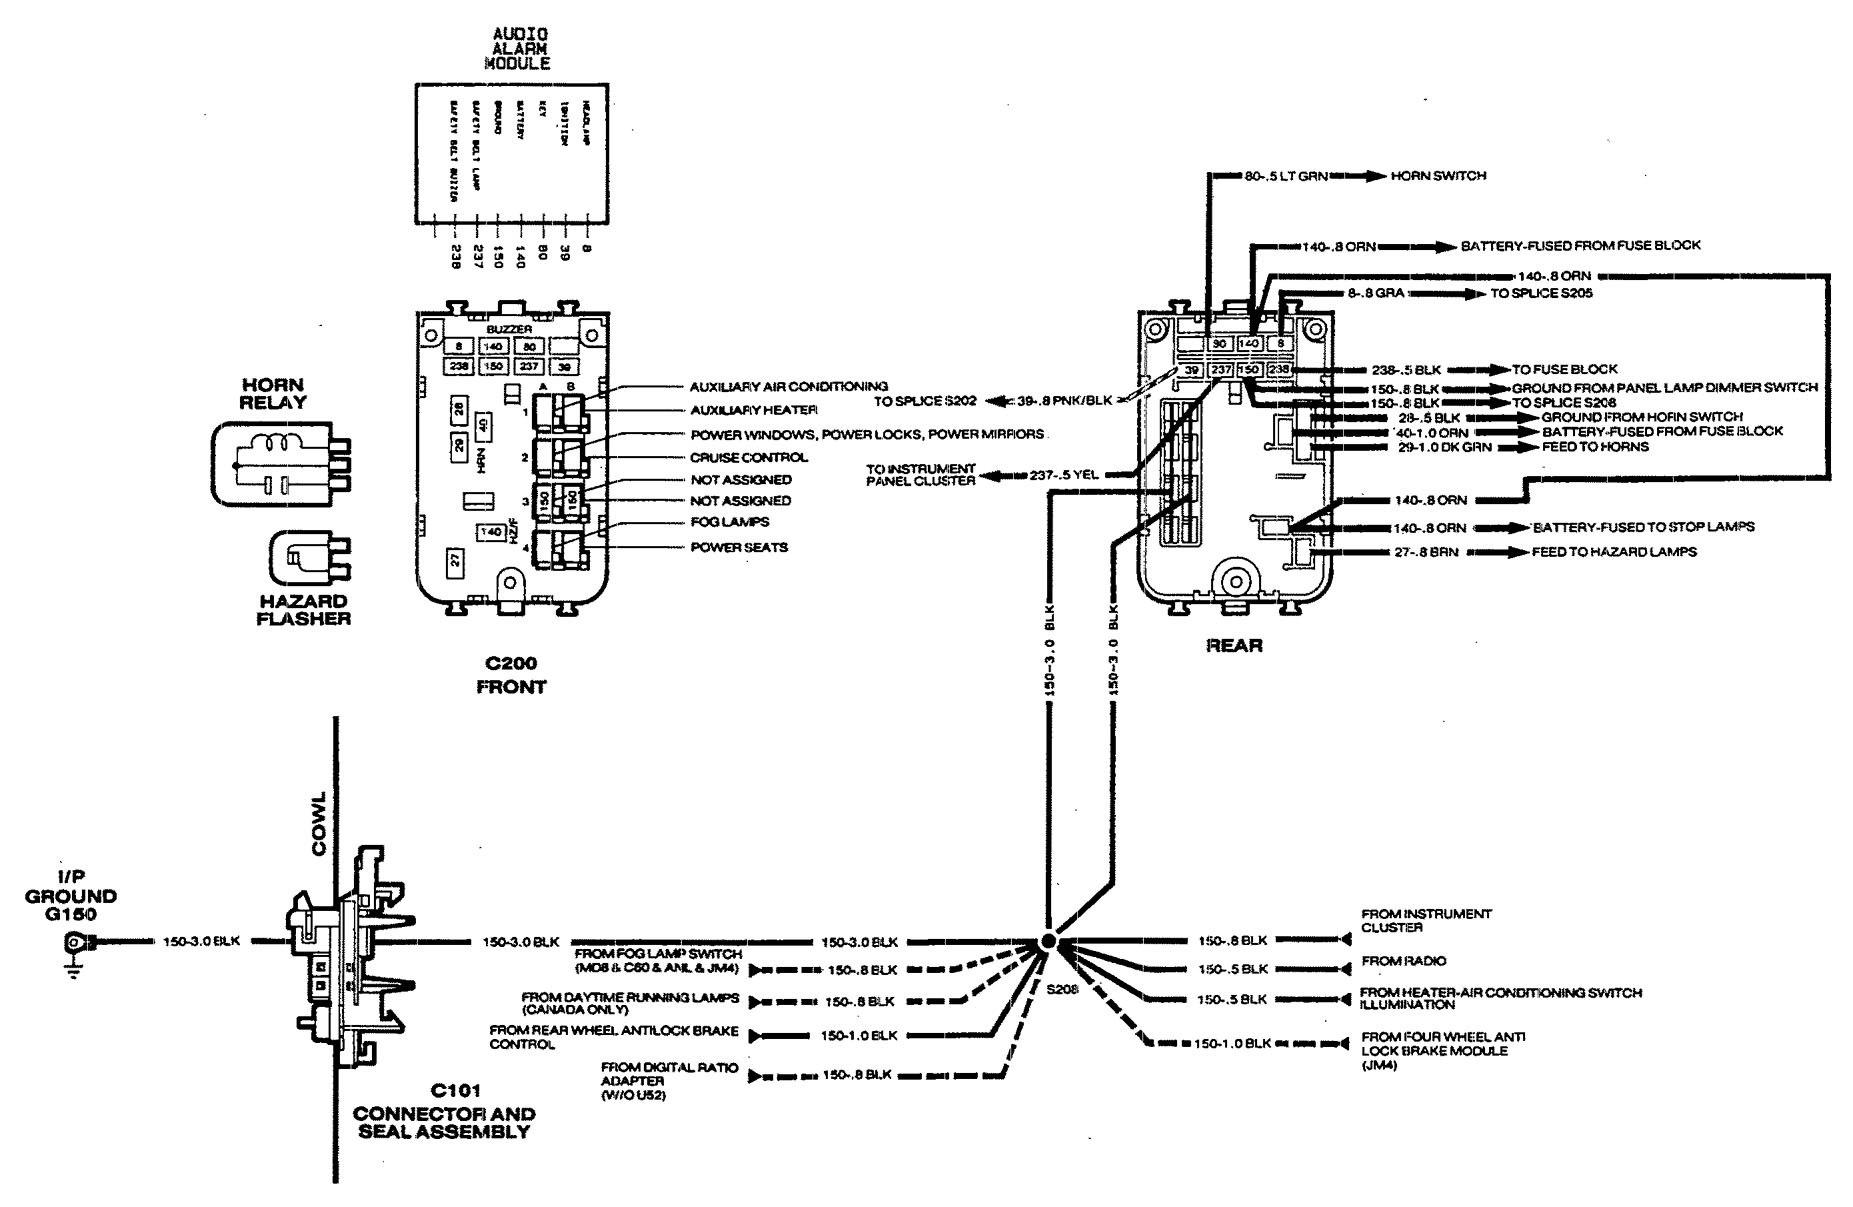 1990 ford fuel system diagram uk home telephone wiring 2007 f53 diagrams econoline fuse